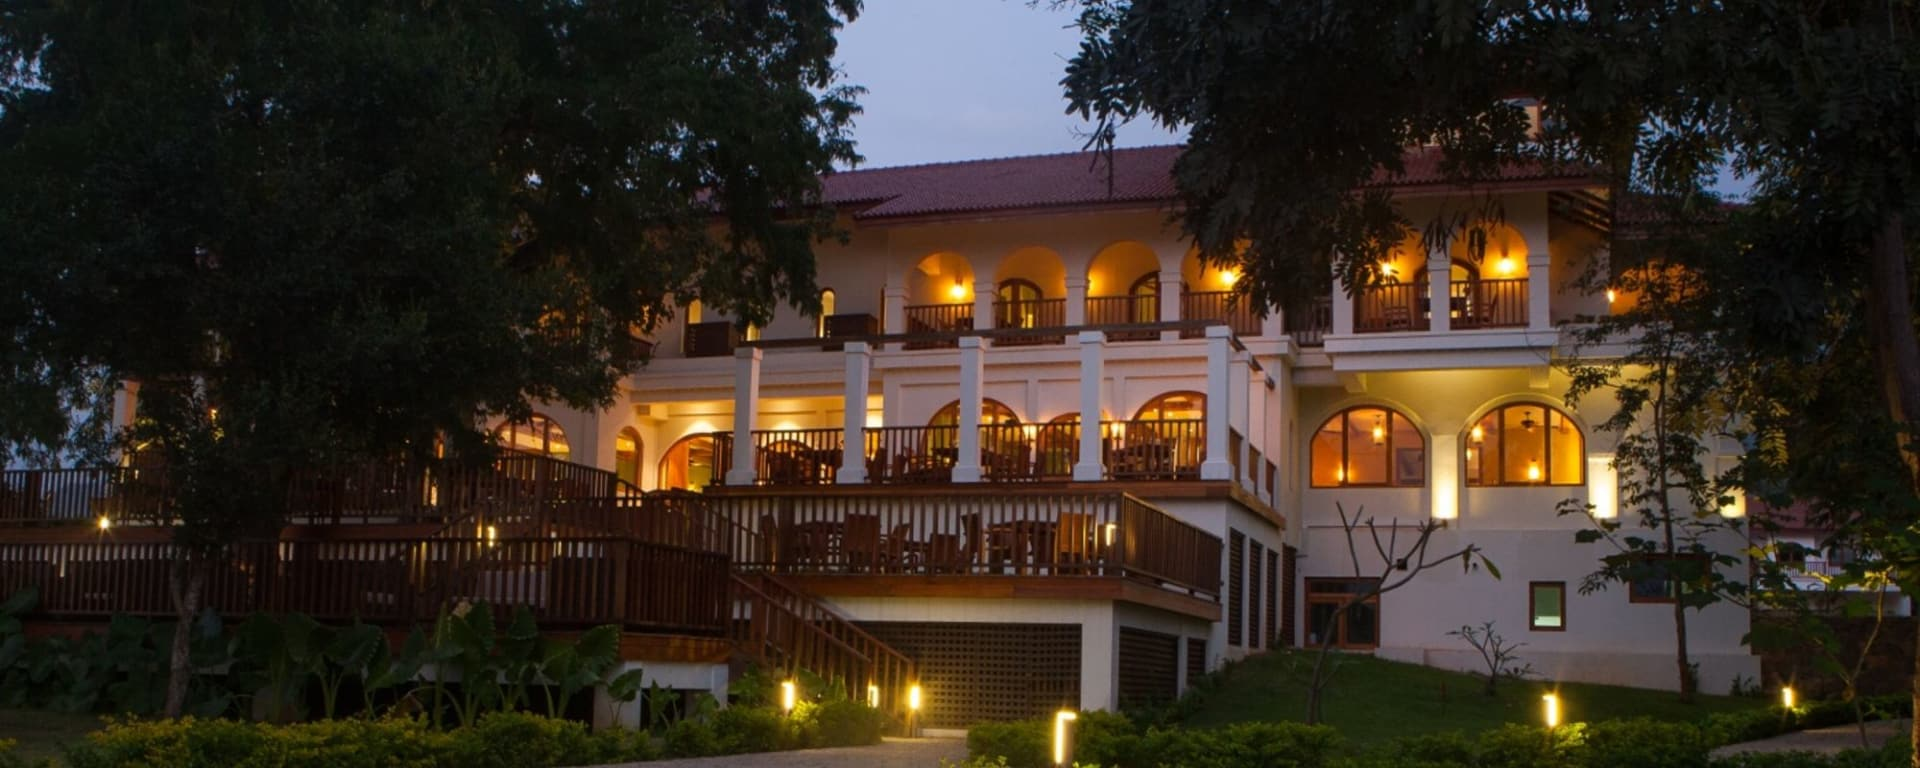 Sanctum Inle Resort in Inle Lake: facade lighted